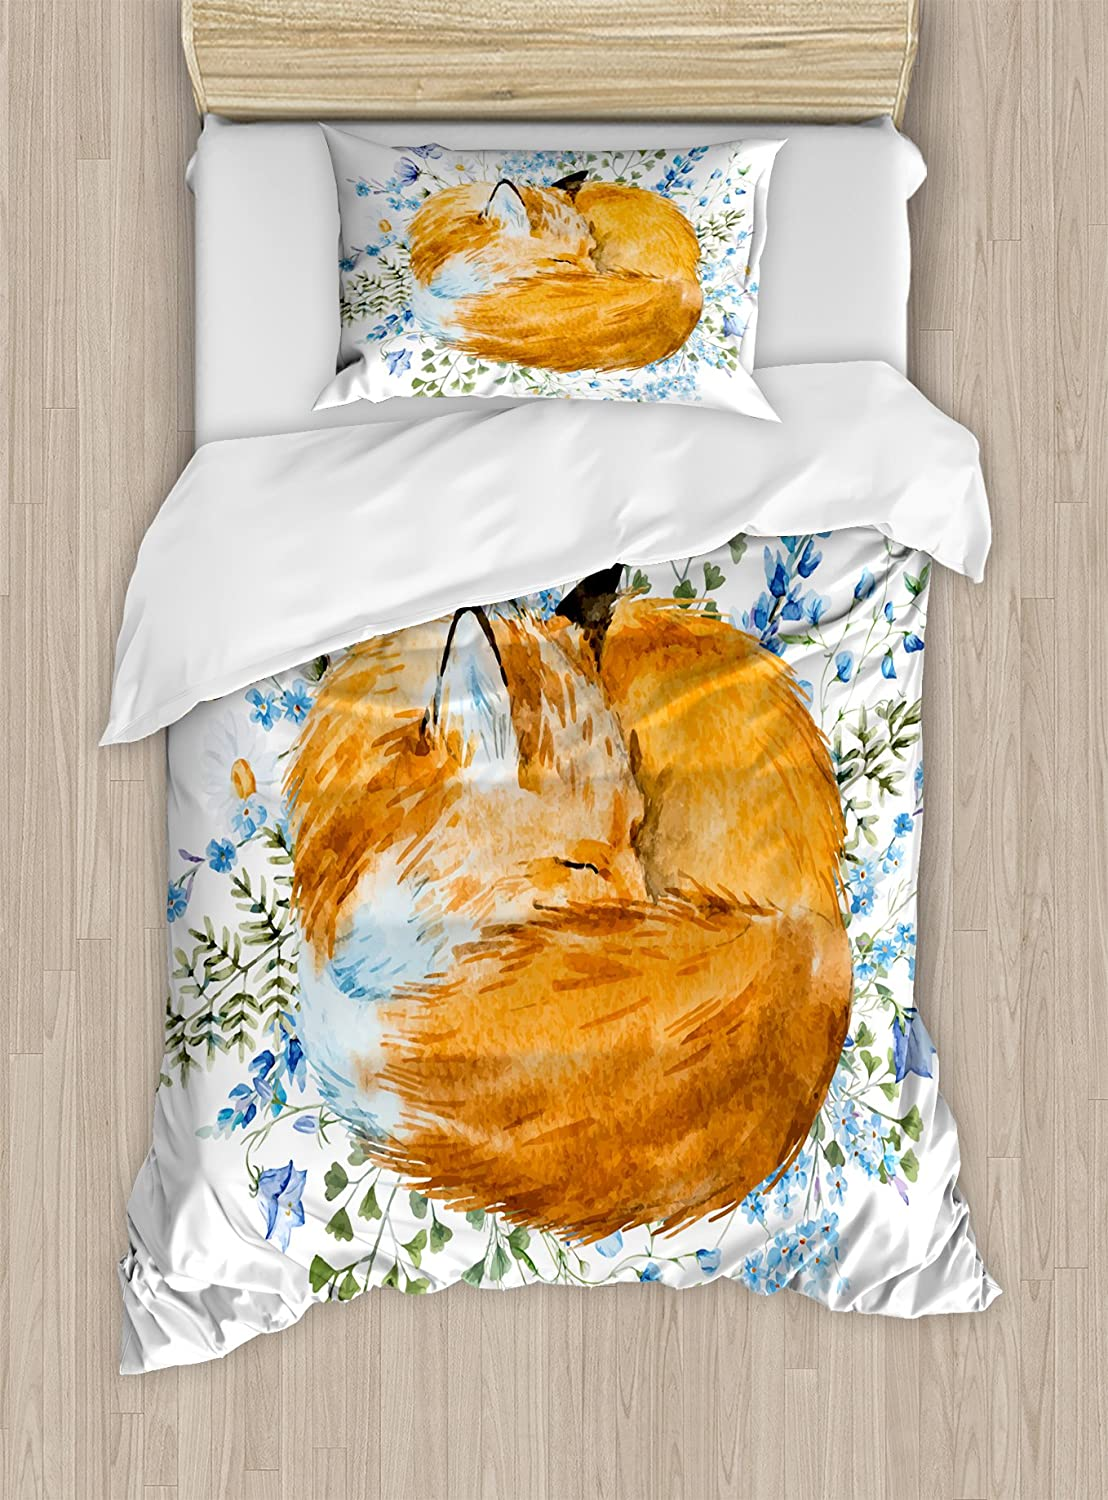 Ambesonne Fox Duvet Cover Set, Sleeping Fox in Watercolors Hand Drawn Fresh Wild Flowers Blossoms Artwork, Decorative 2 Piece Bedding Set with 1 Pillow Sham, Twin Size, Olive Green